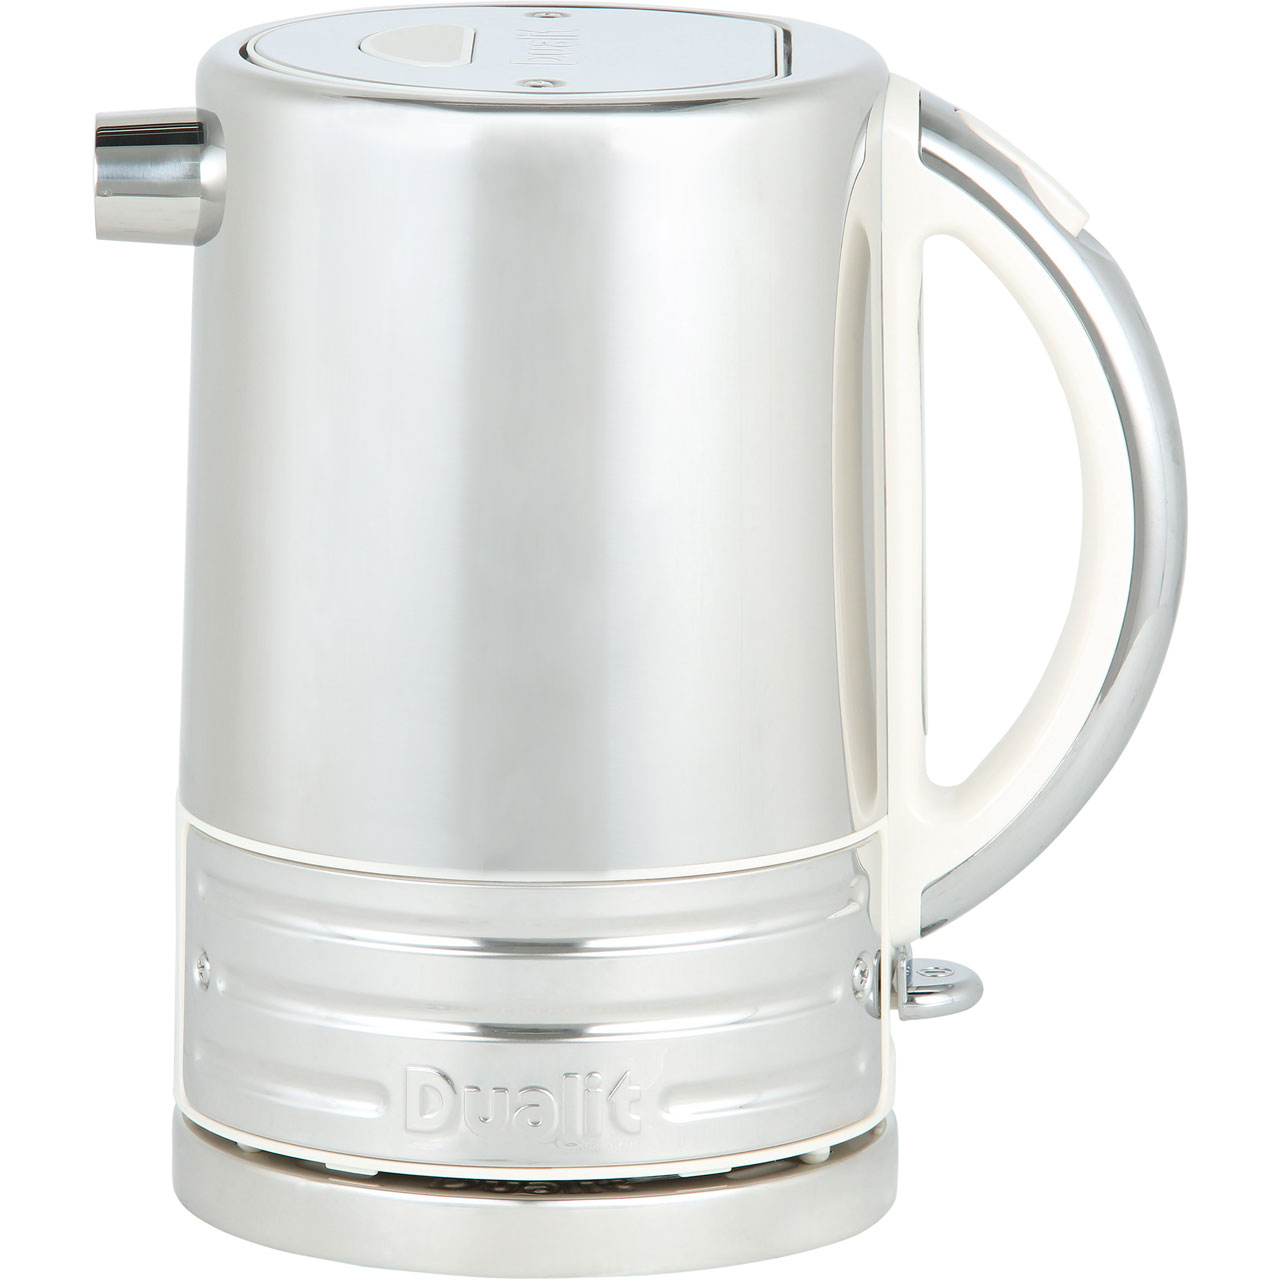 7d403bb4e46f ... Dualit Architect 72923 Kettle - Canvas White / Stainless Steel -  72923_CWS - 1 ...